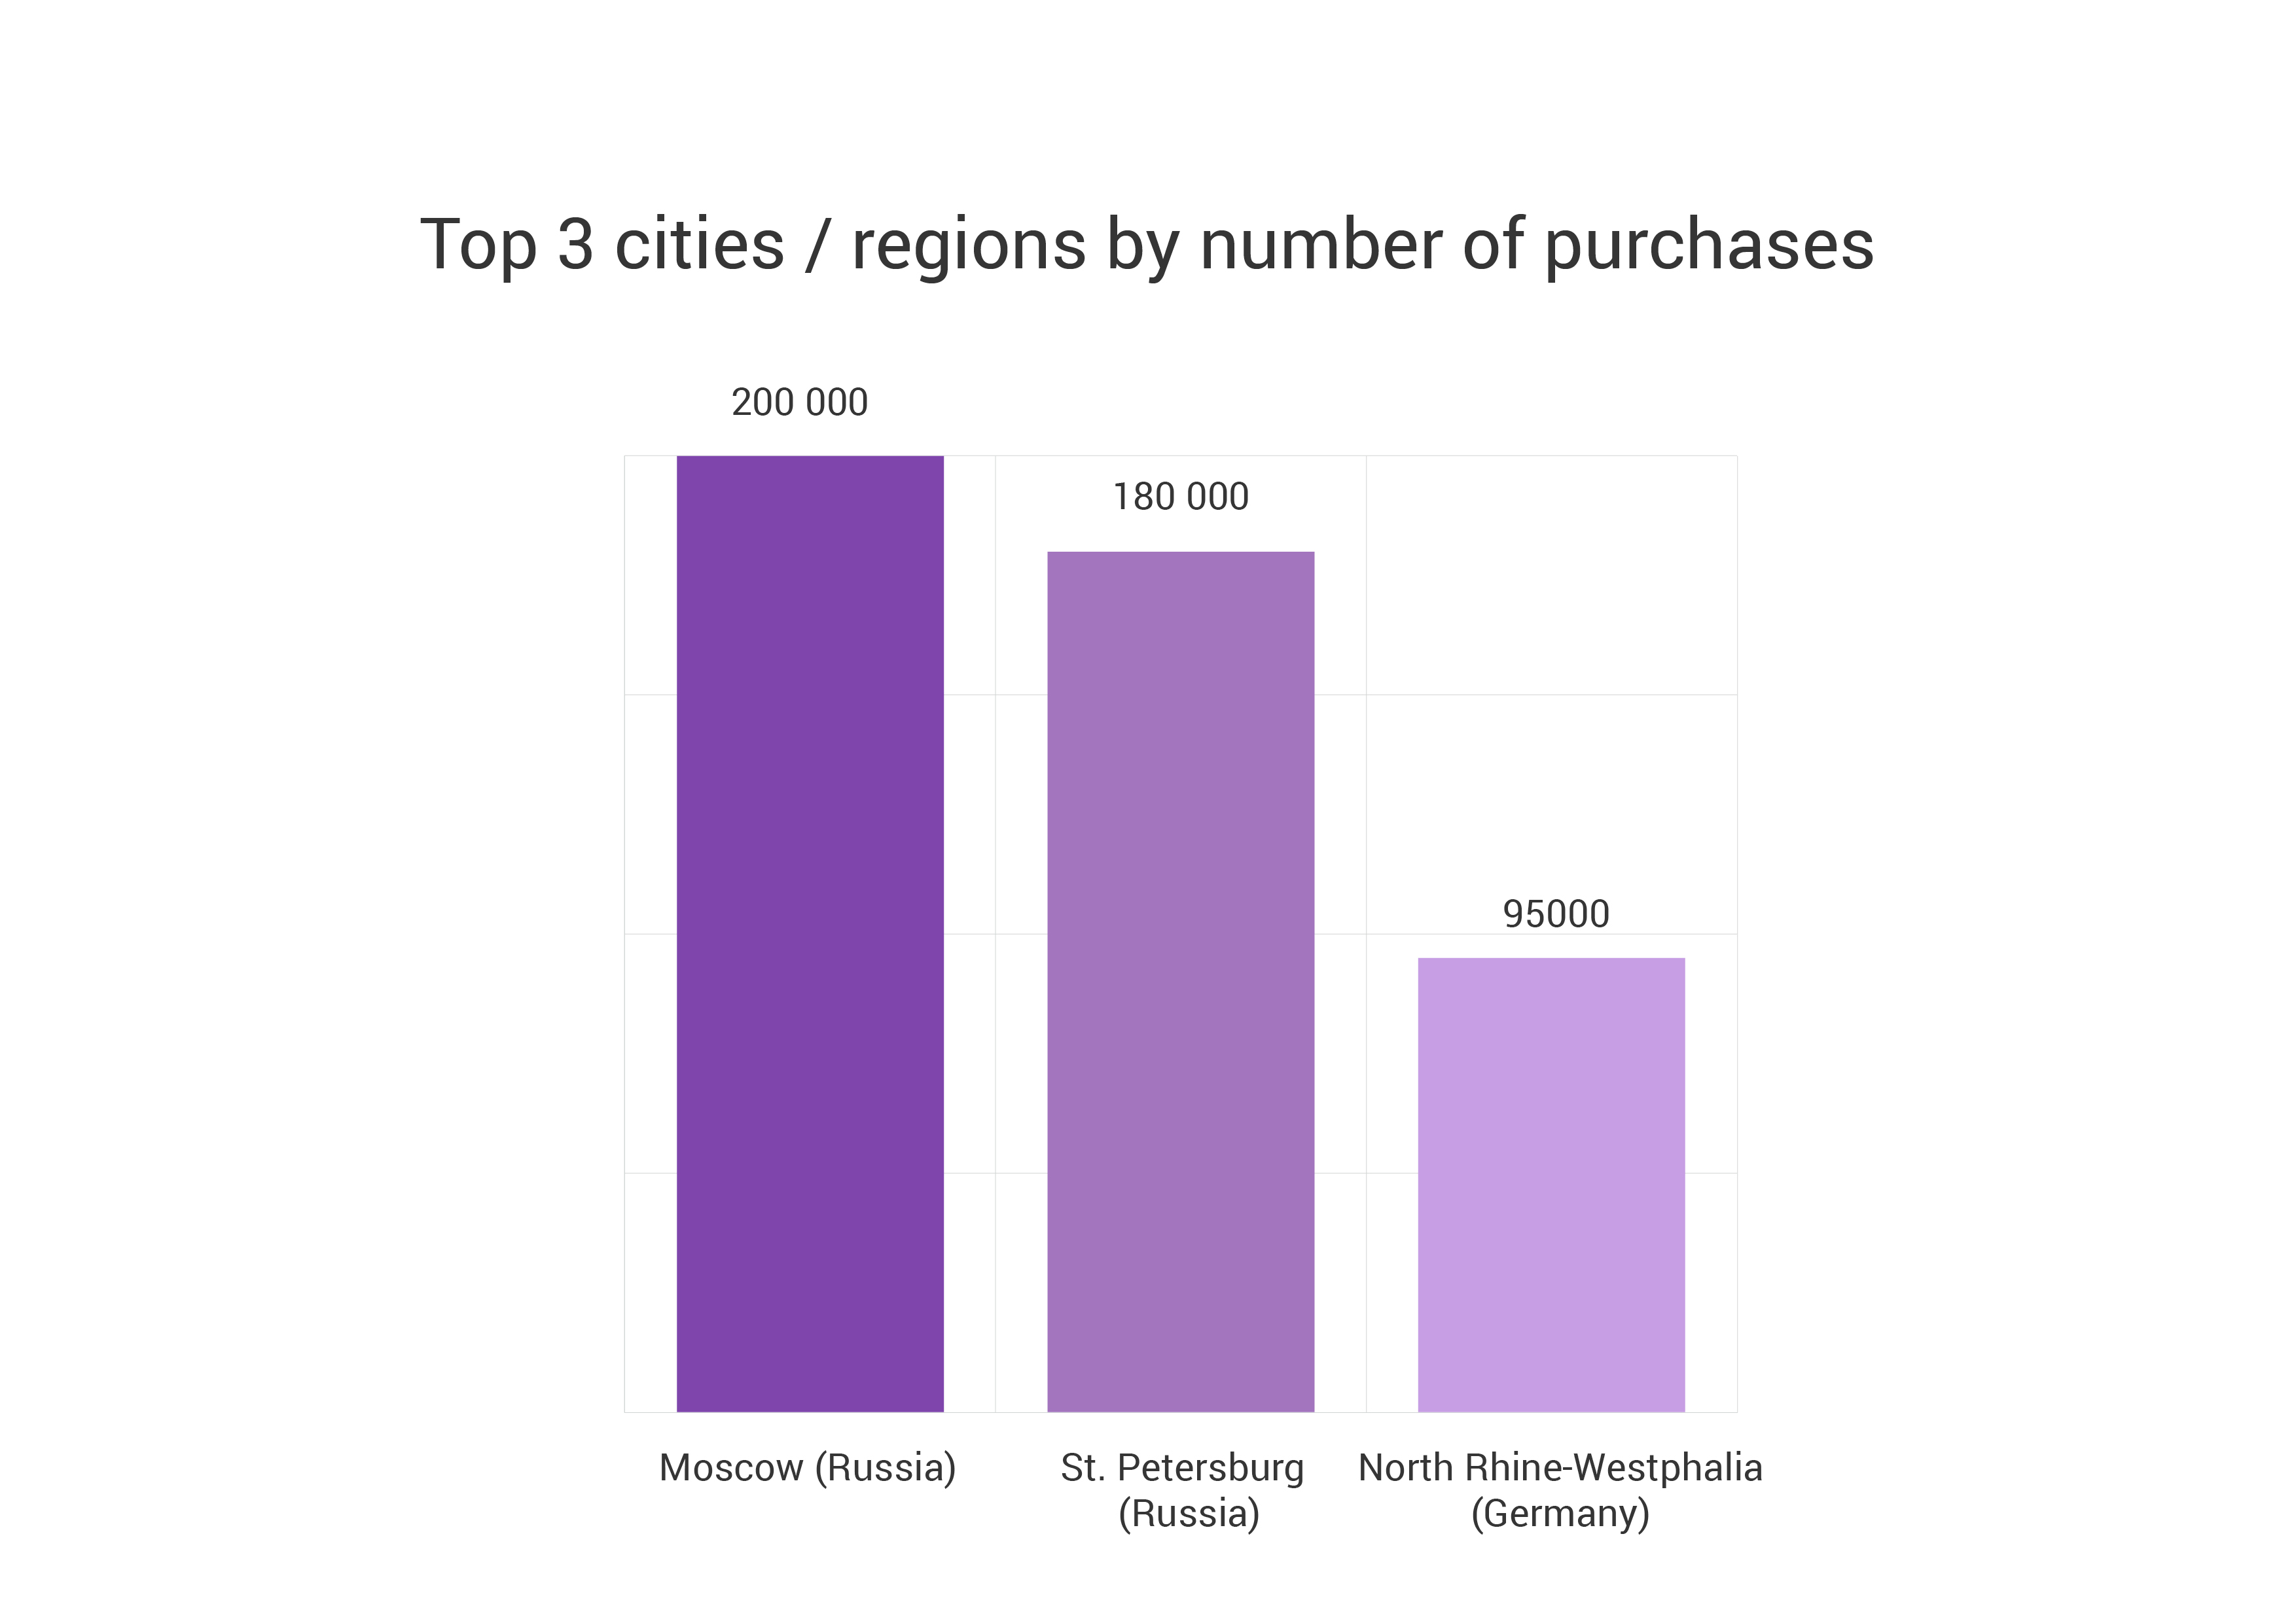 Top 3 citiesregions by number of purchases